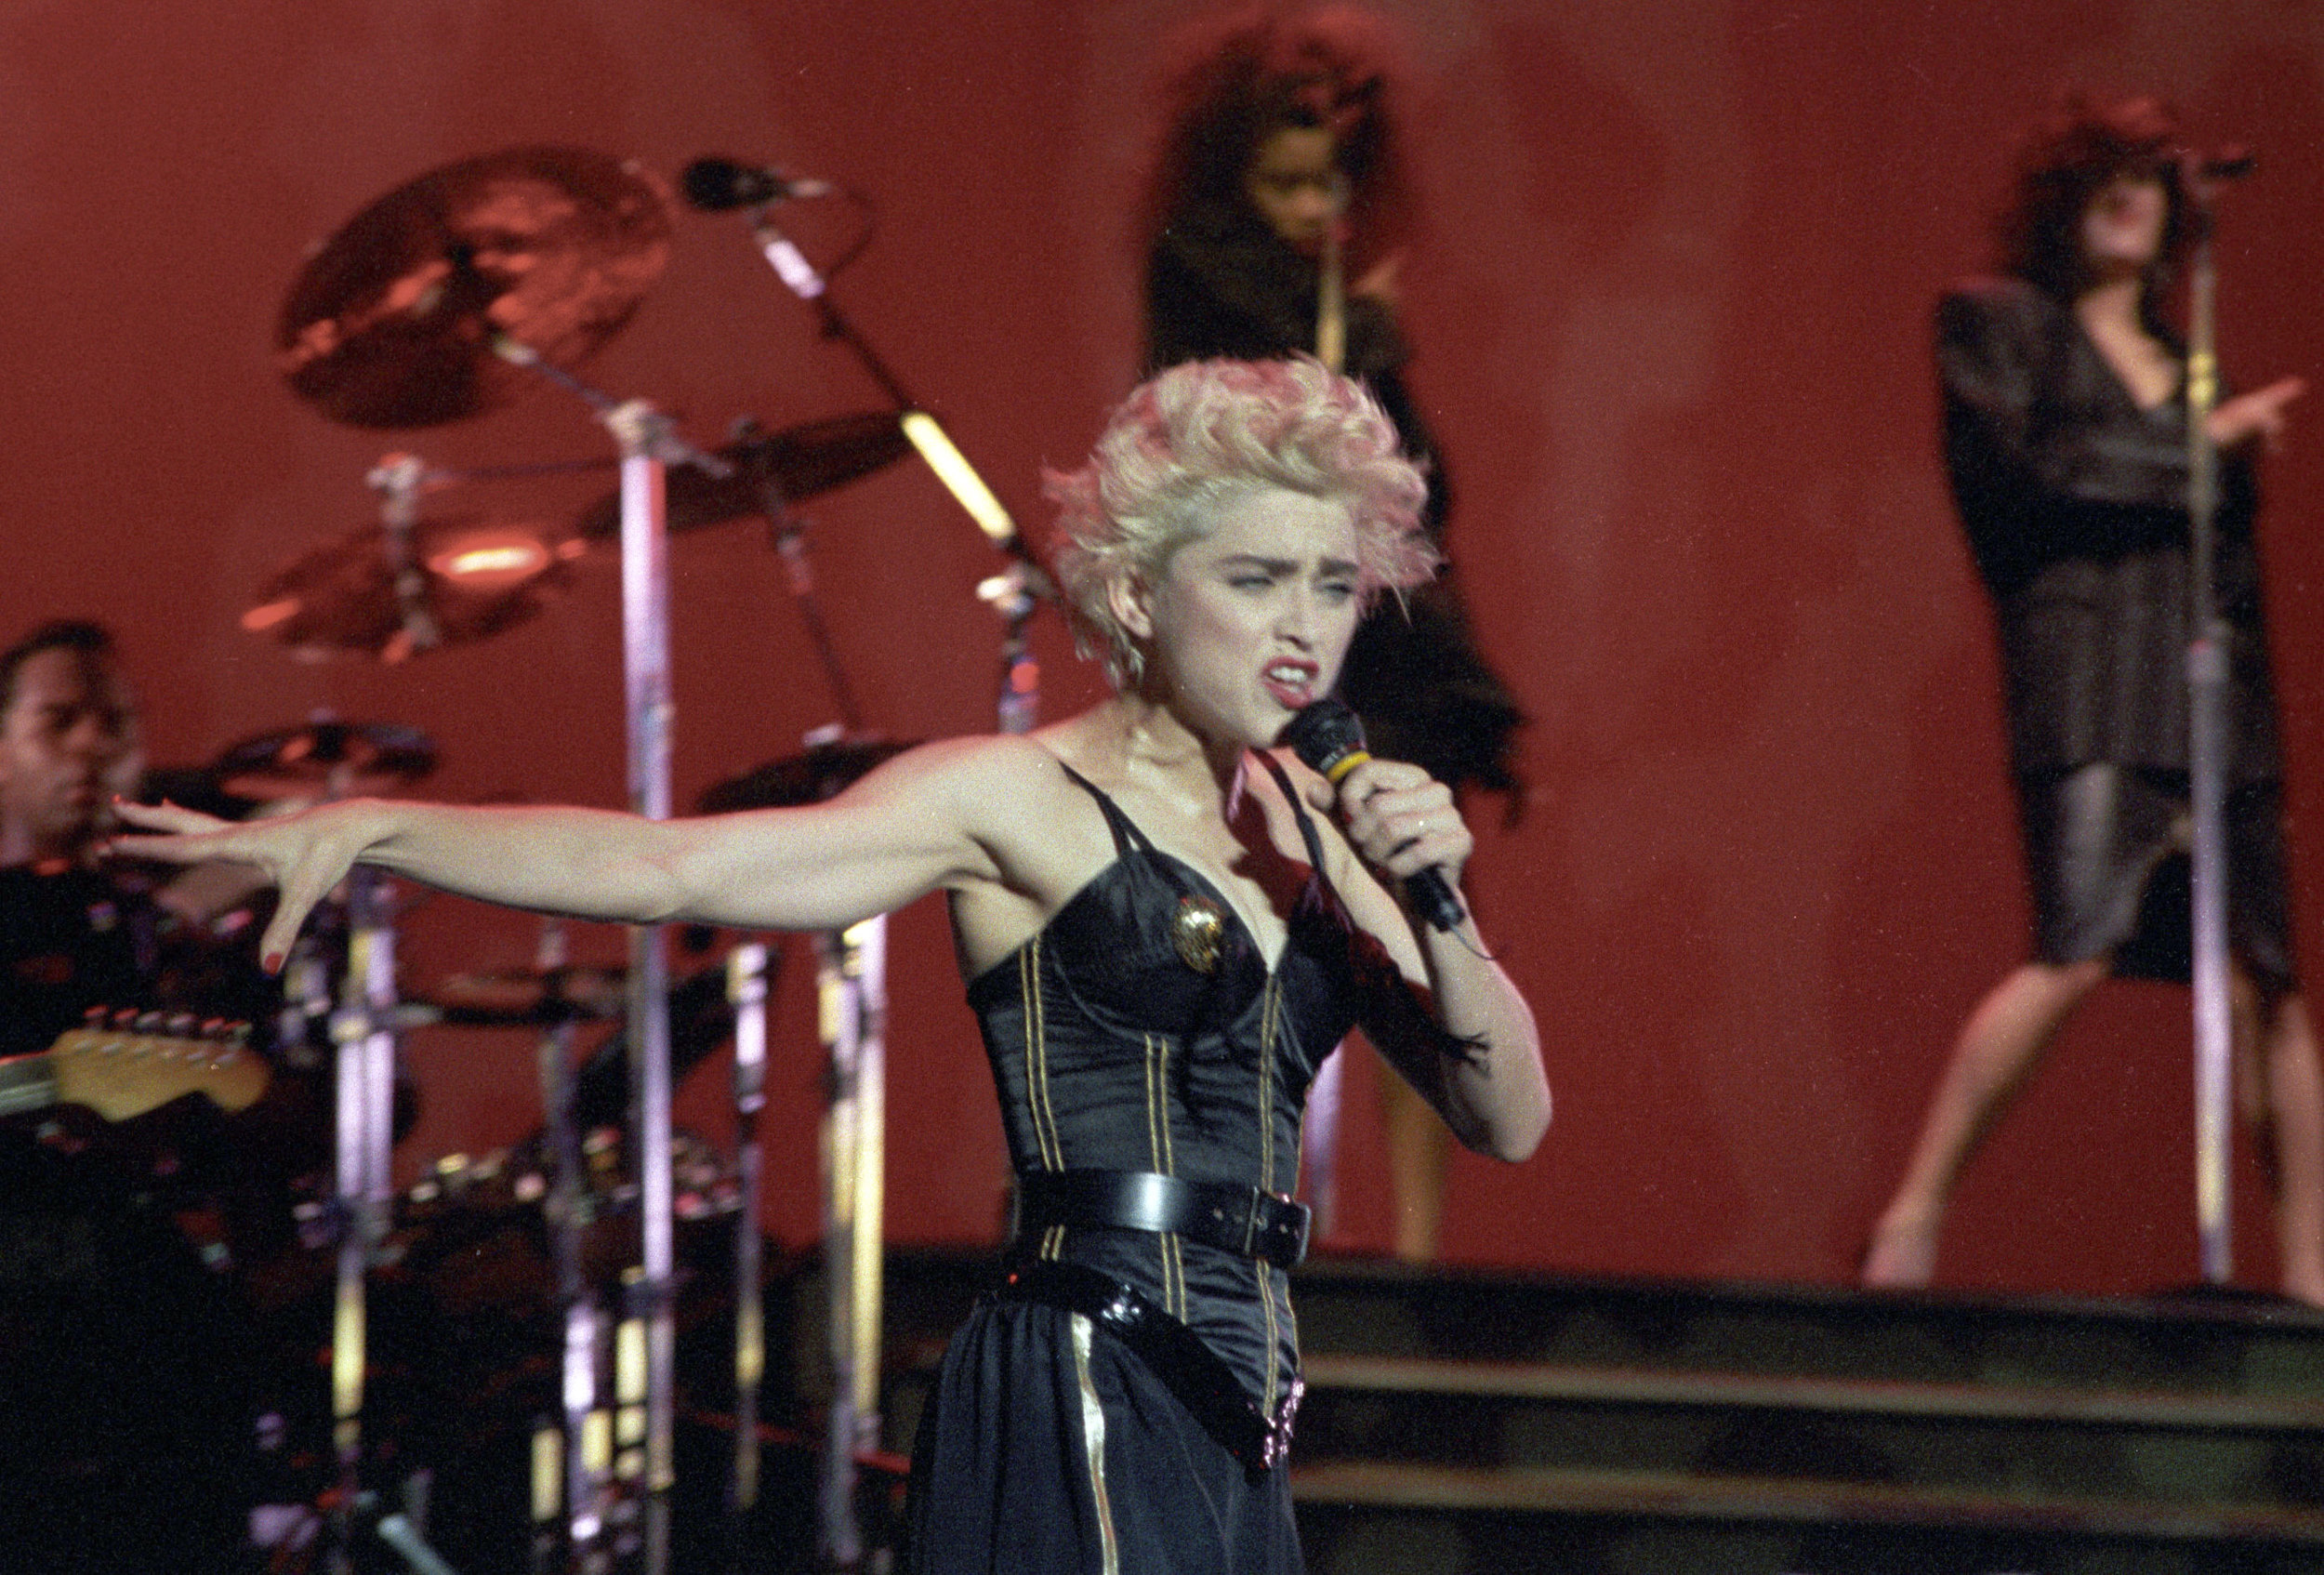 pop muziek popmuziek muzikanten artiest Engeland Londen Wembley Stadium Madonna 19 08 1987 augustus Whos That Girl World Tour zangeres Amerika Amerikaanse Queen of Pop